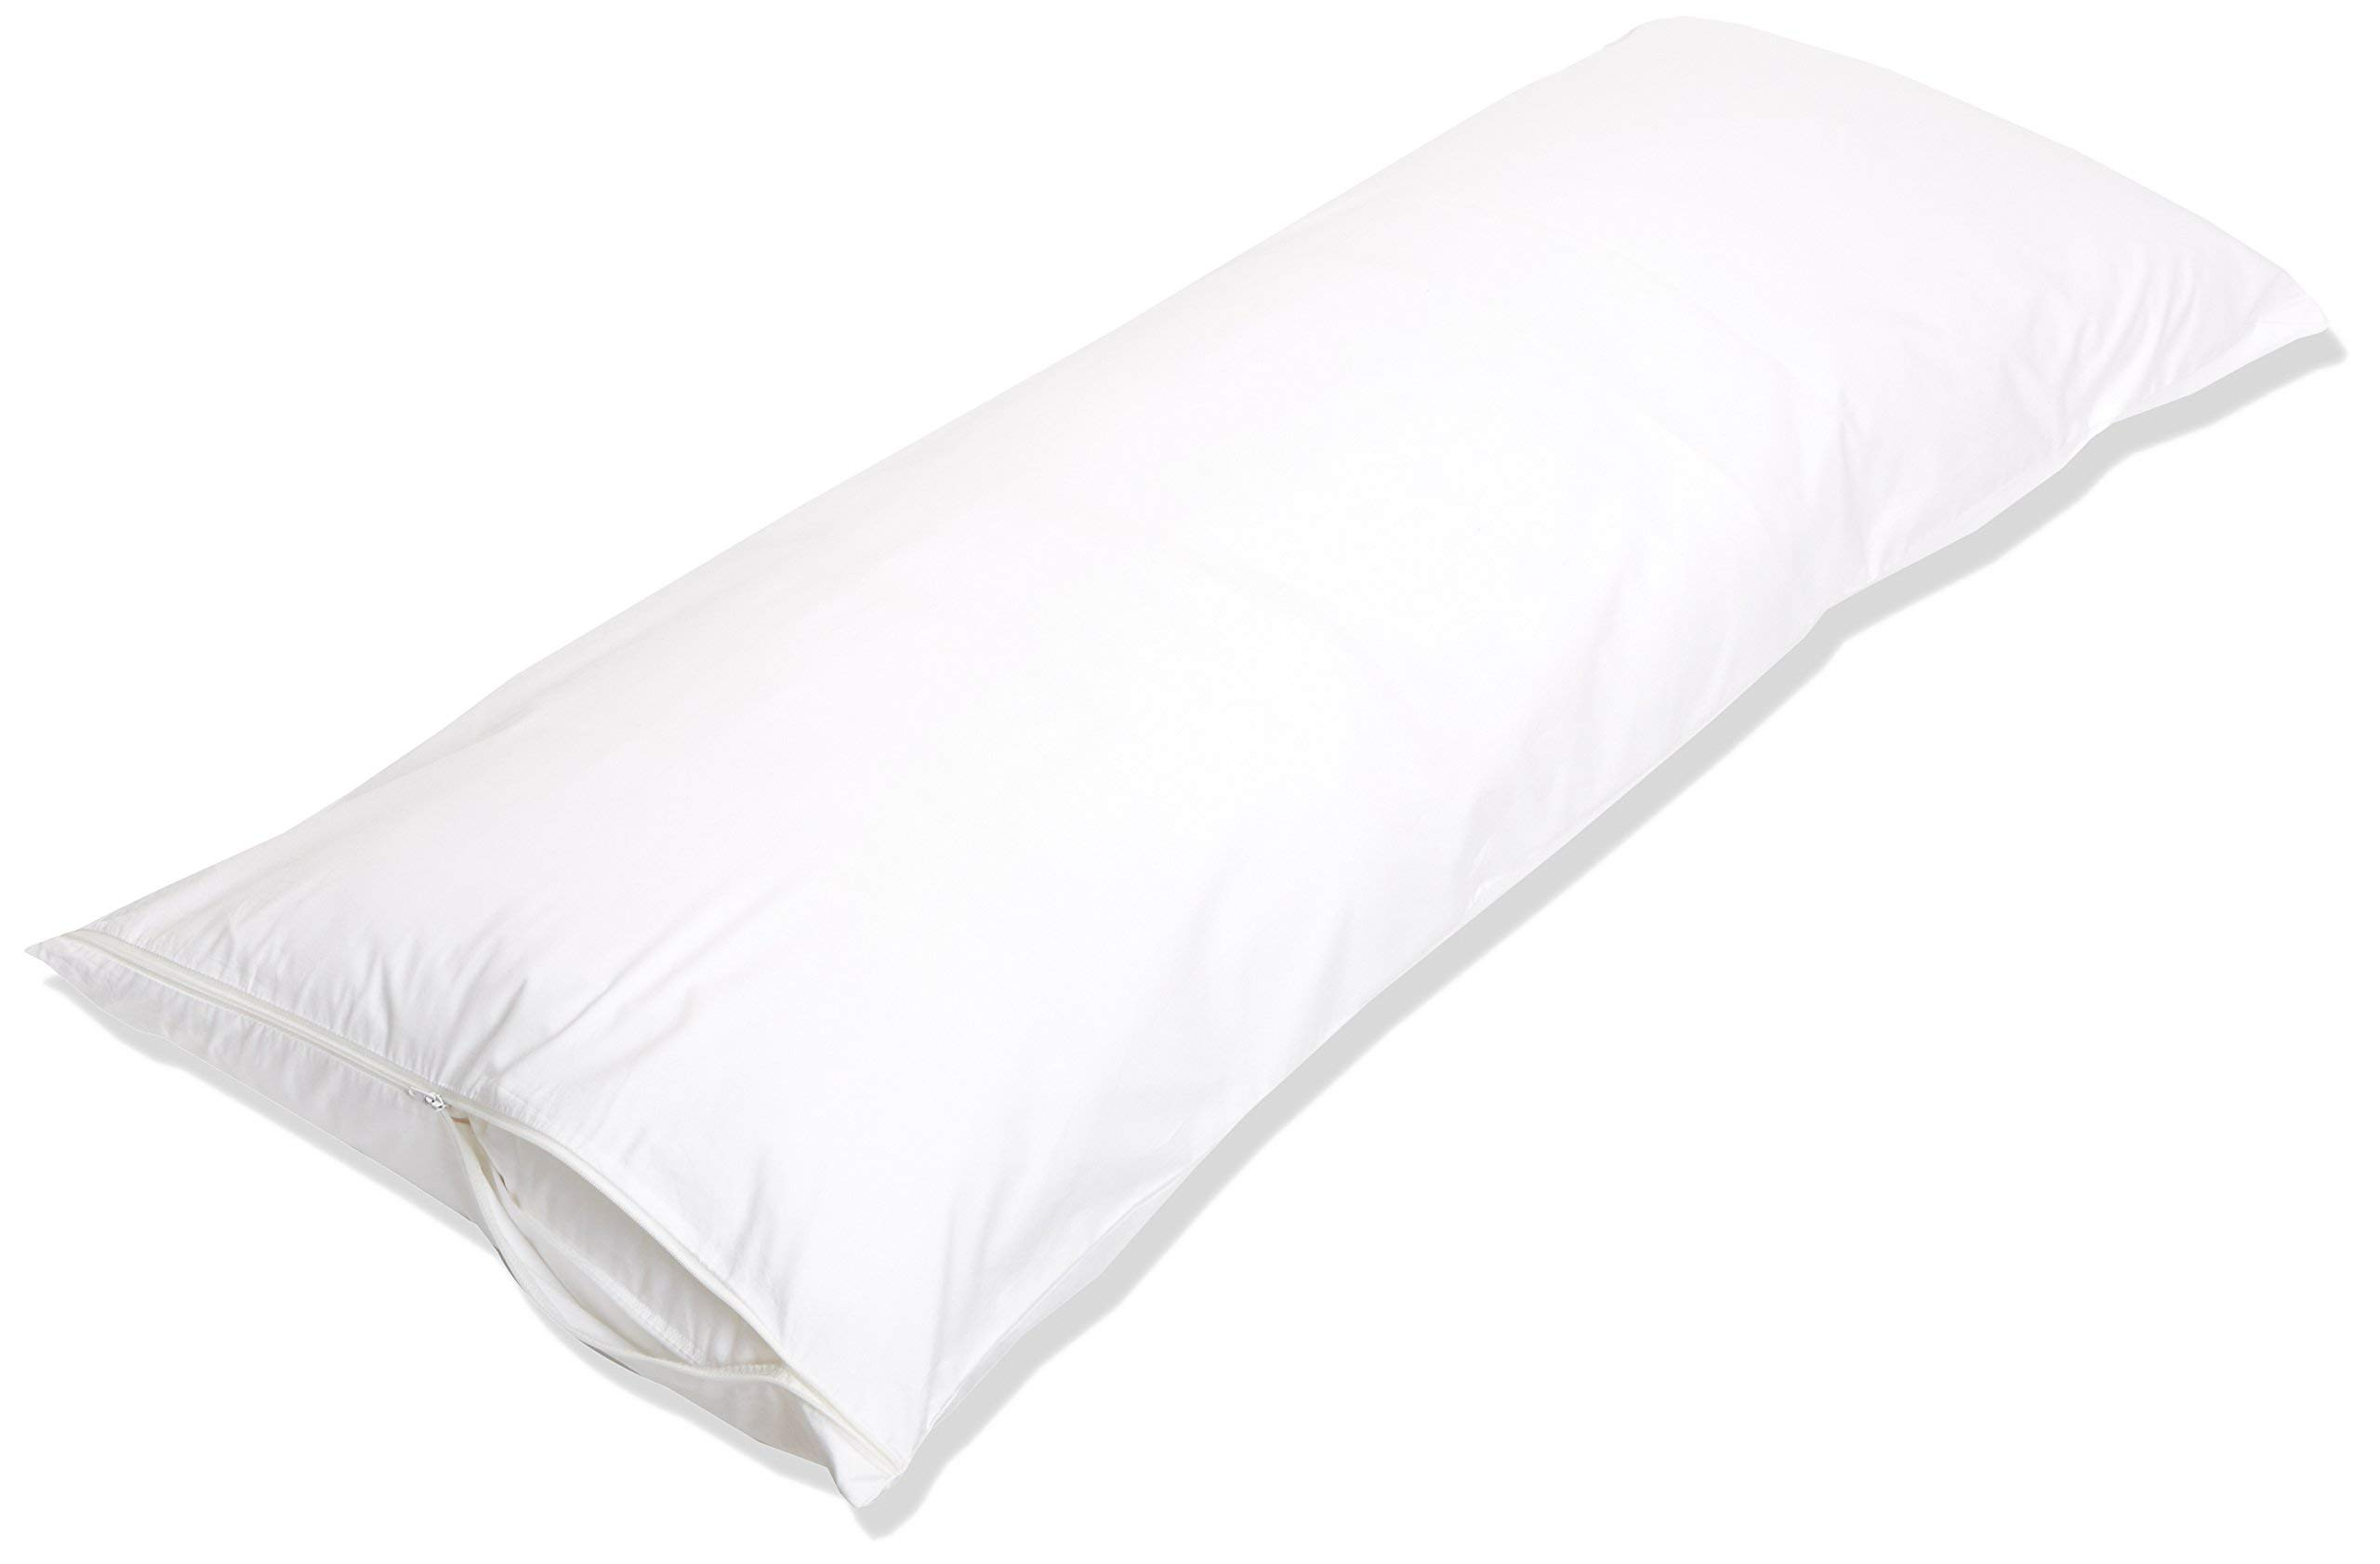 Amazon Basics 100% Cotton Hypoallergenic Pillow Protector Case - Body, White